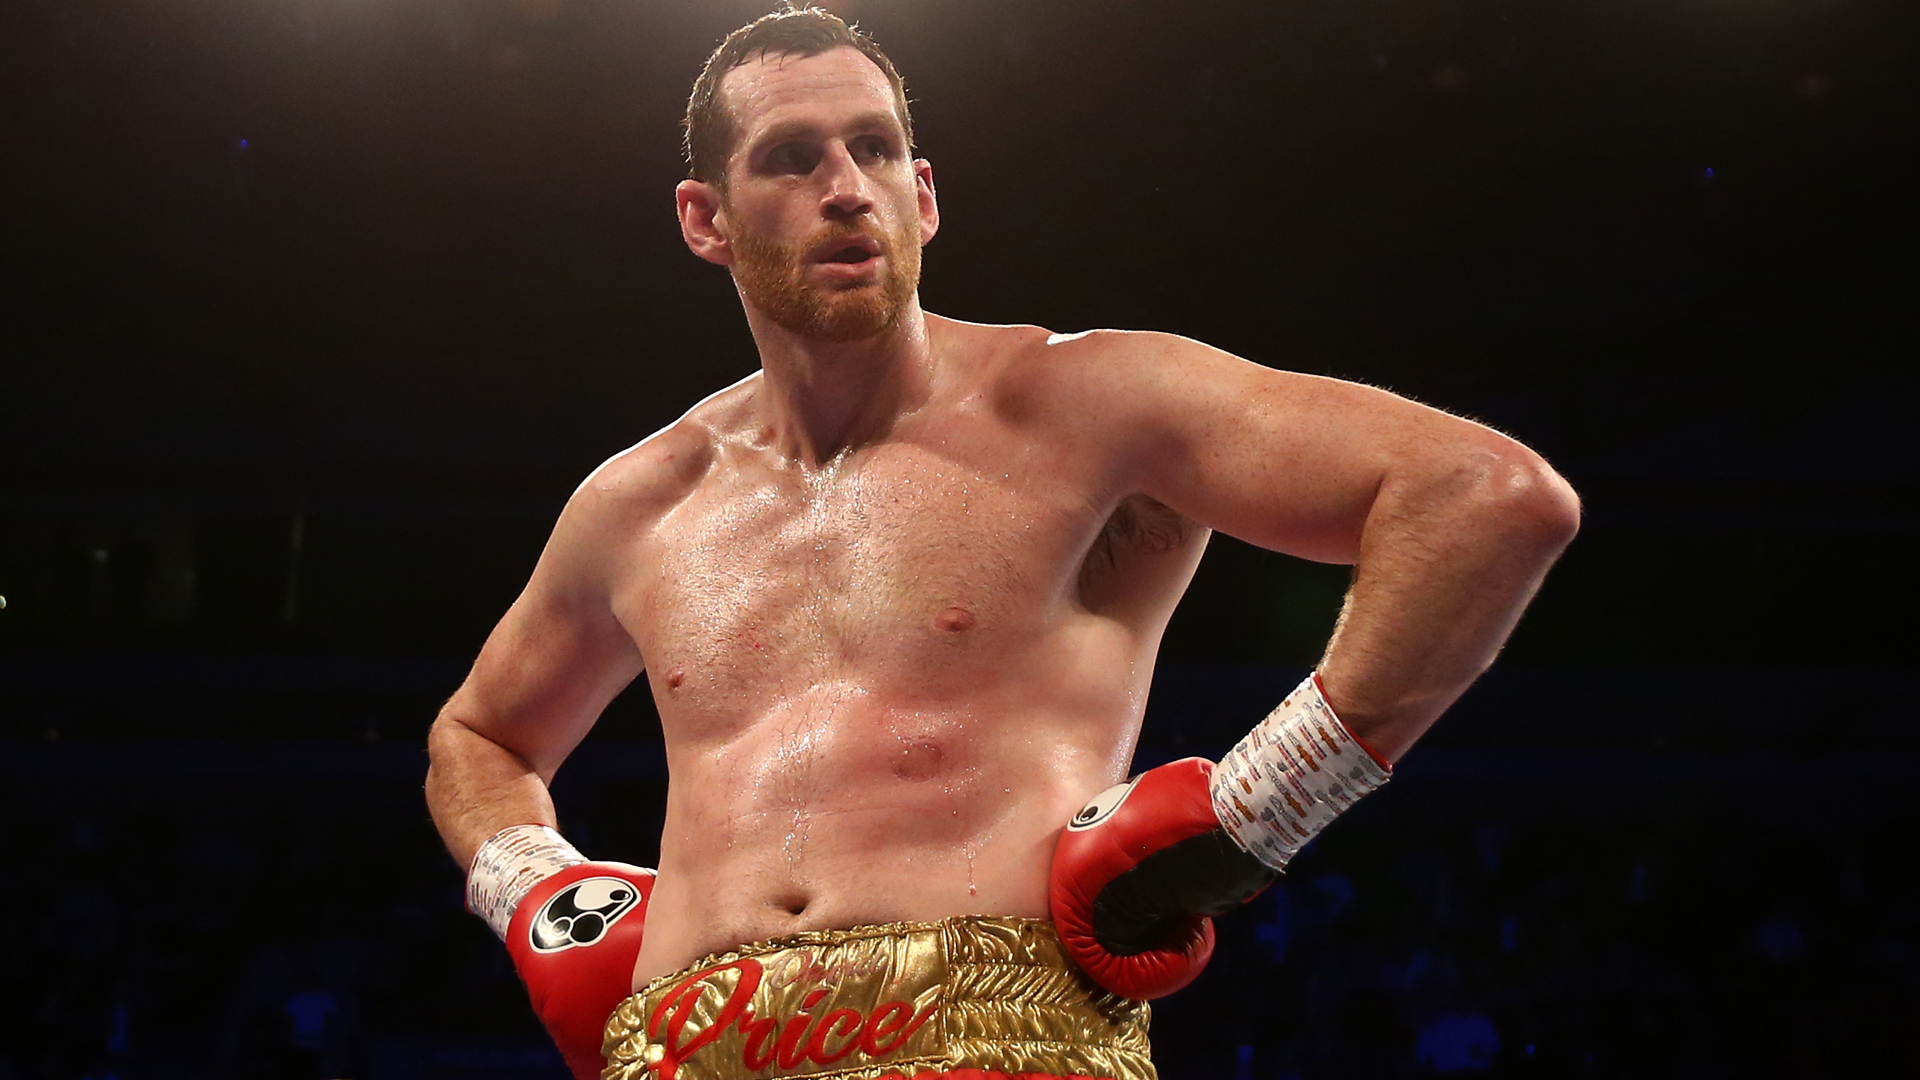 He was looking for a way out – Price slams Ali over bite | BOXING